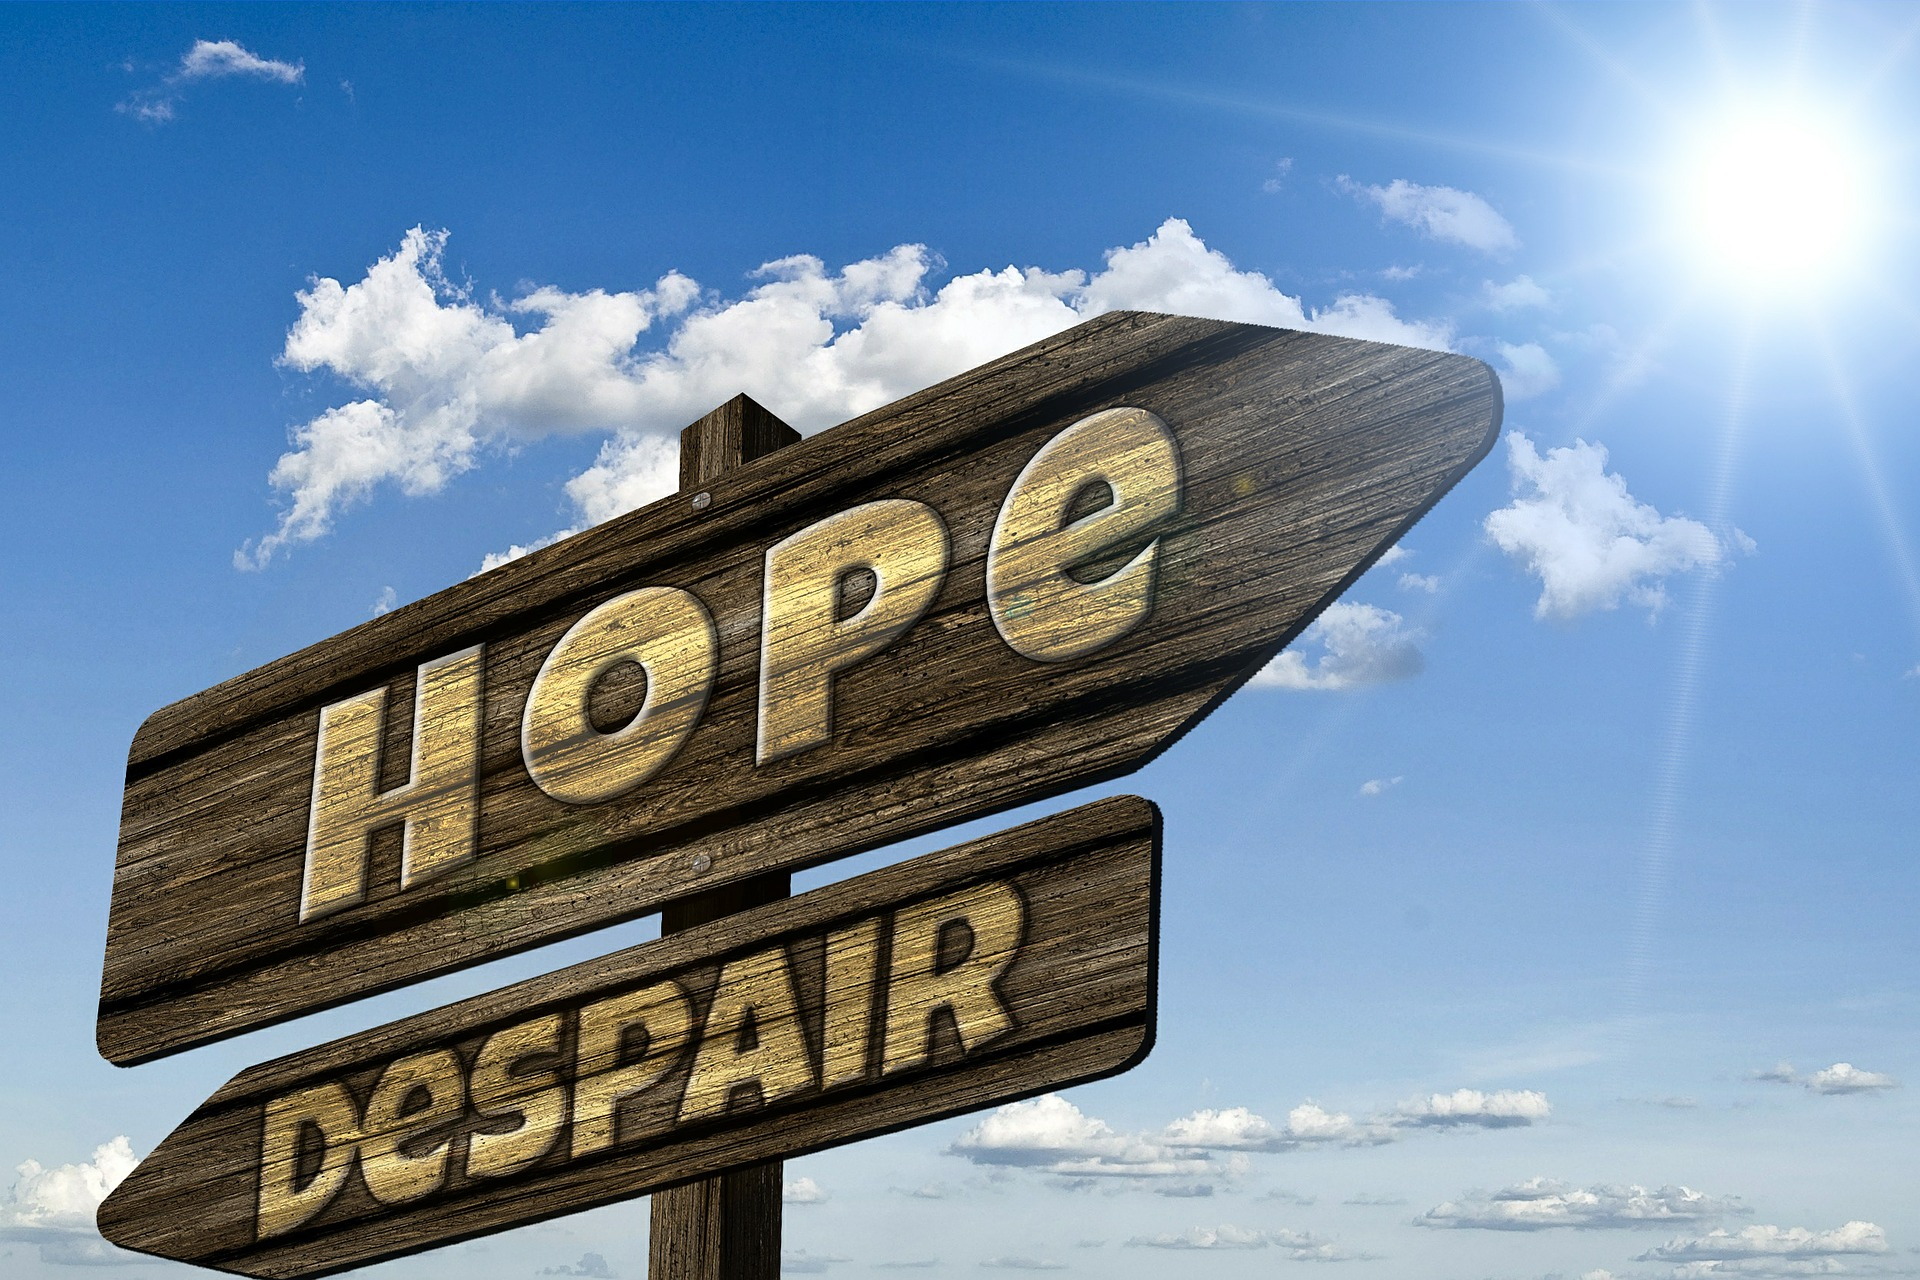 Moving from despair to hope in franchising